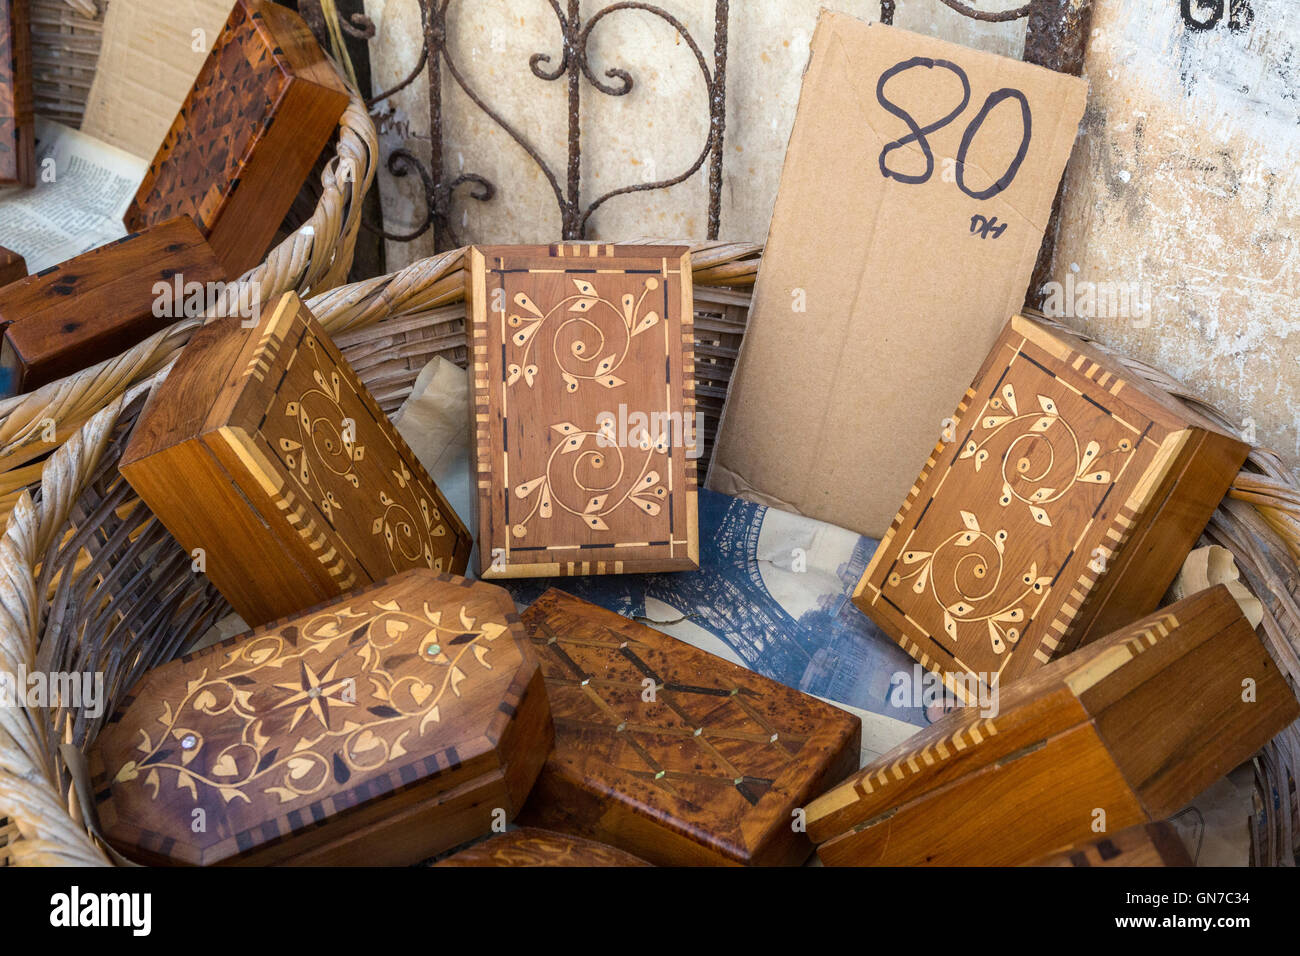 Essaouira, Morocco.  Boxes made from Thuya Wood. - Stock Image